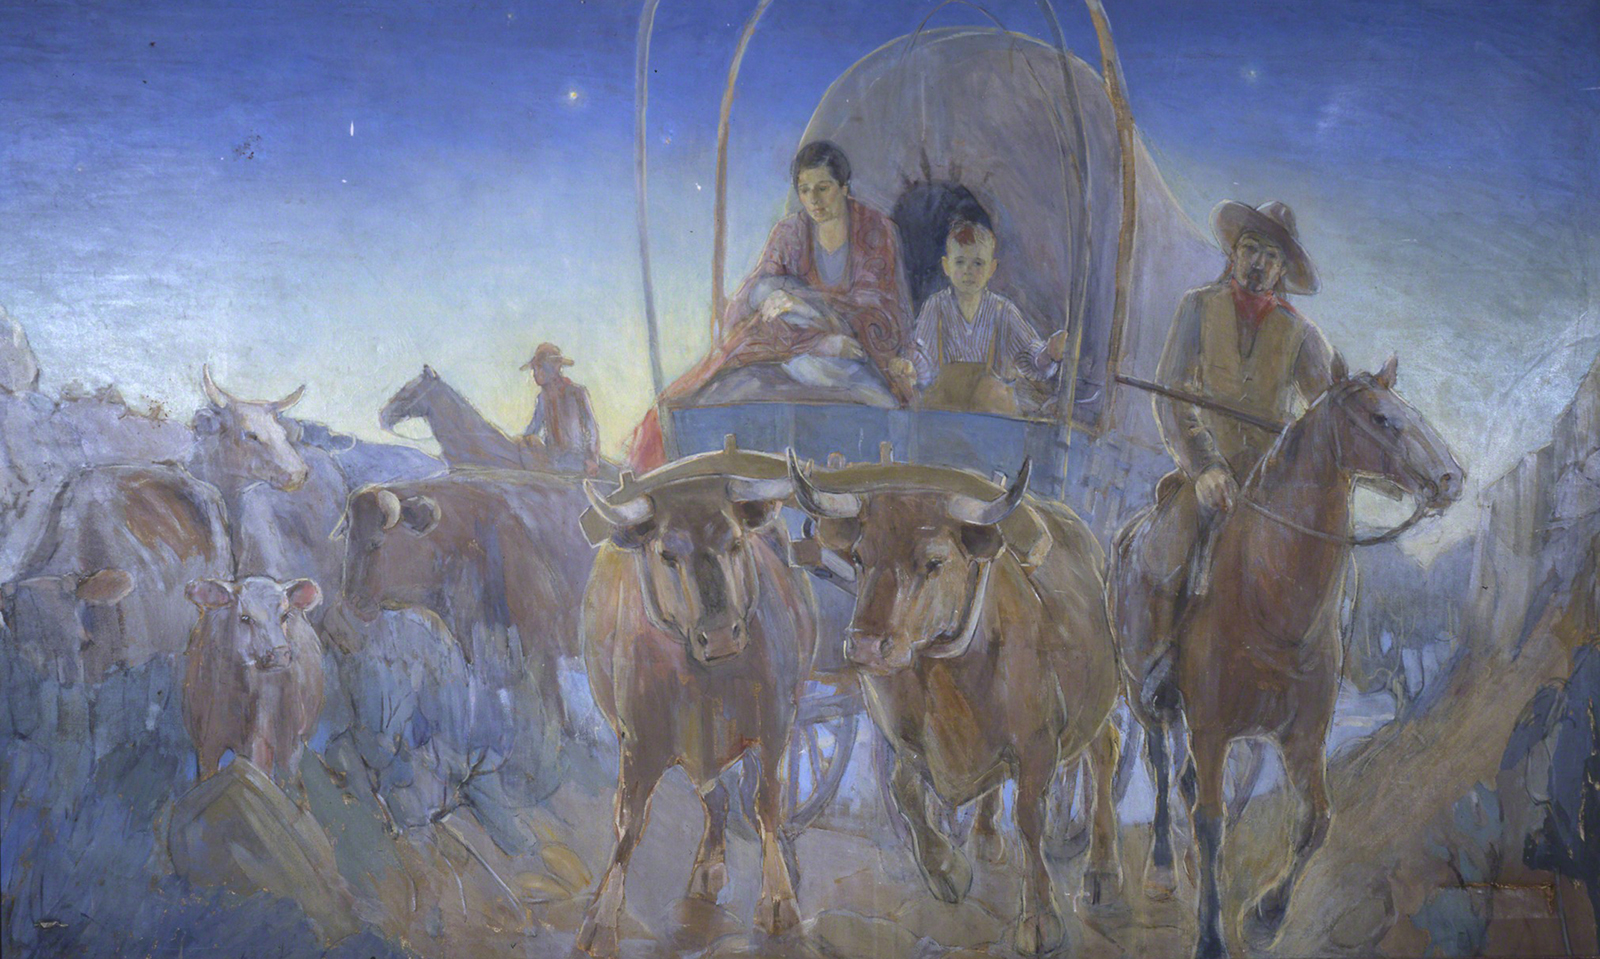 """""""Covered Wagon Pioneers, Madonna at Dawn,"""" by Minerva K. Teichert. Thomas Alexander, who was the president of the National Society of the Sons of Utah Pioneers in 2015, explained that more people came to Utah by wagon than handcart between 1856 and 1861."""